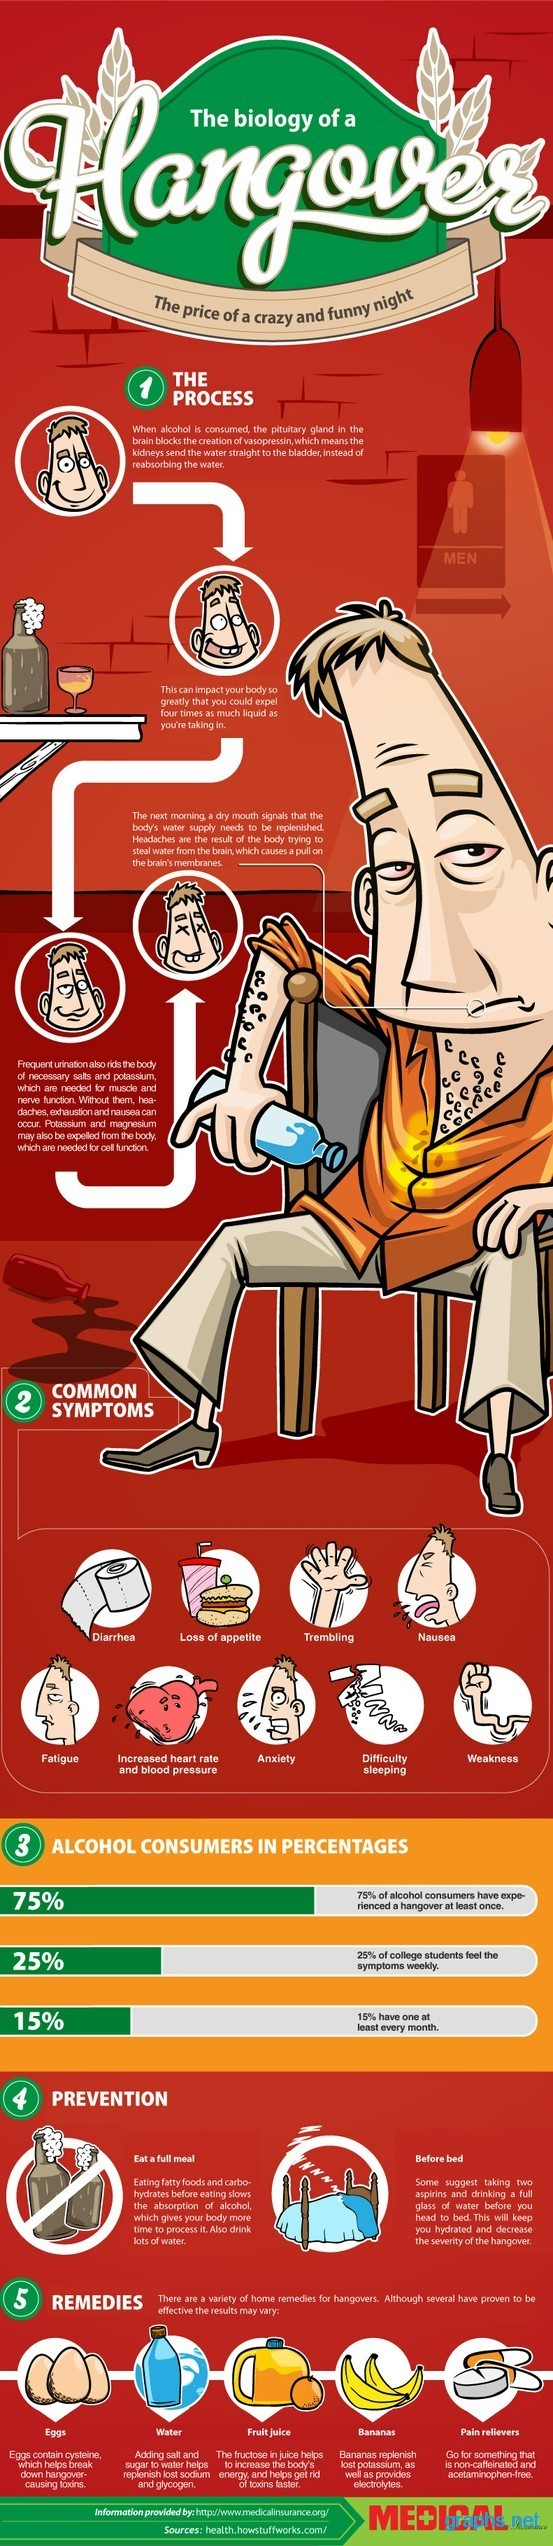 Information about Hangover